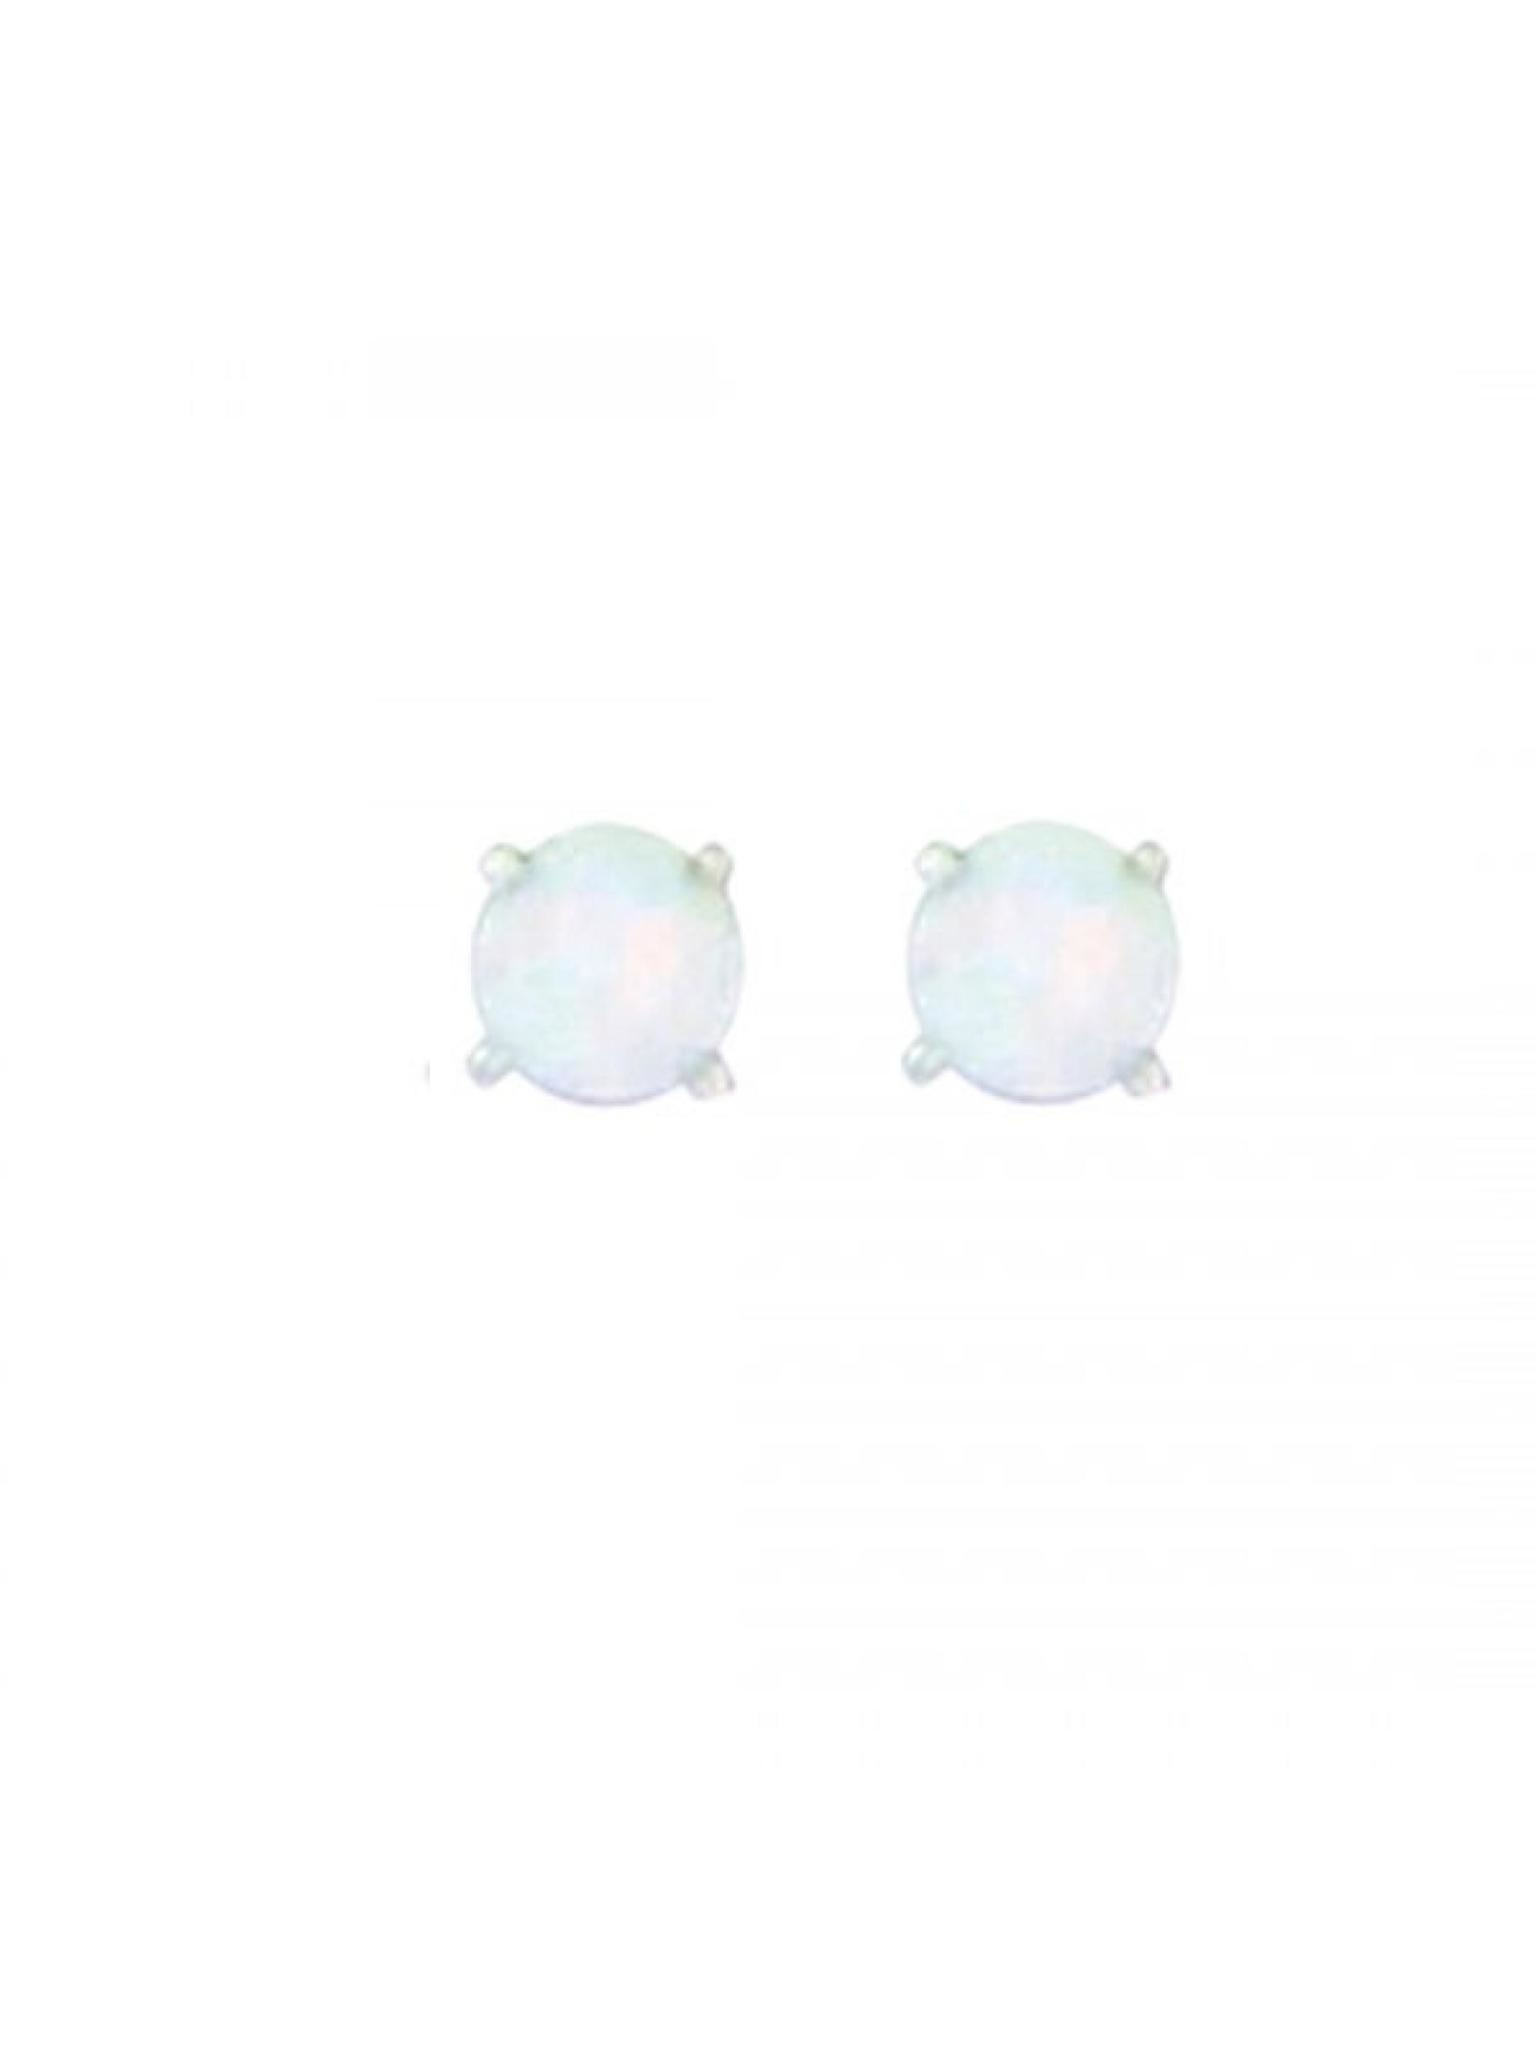 Acomo Jewelry 4mm Synthetic Opal with Prongs Stud Earring Opal